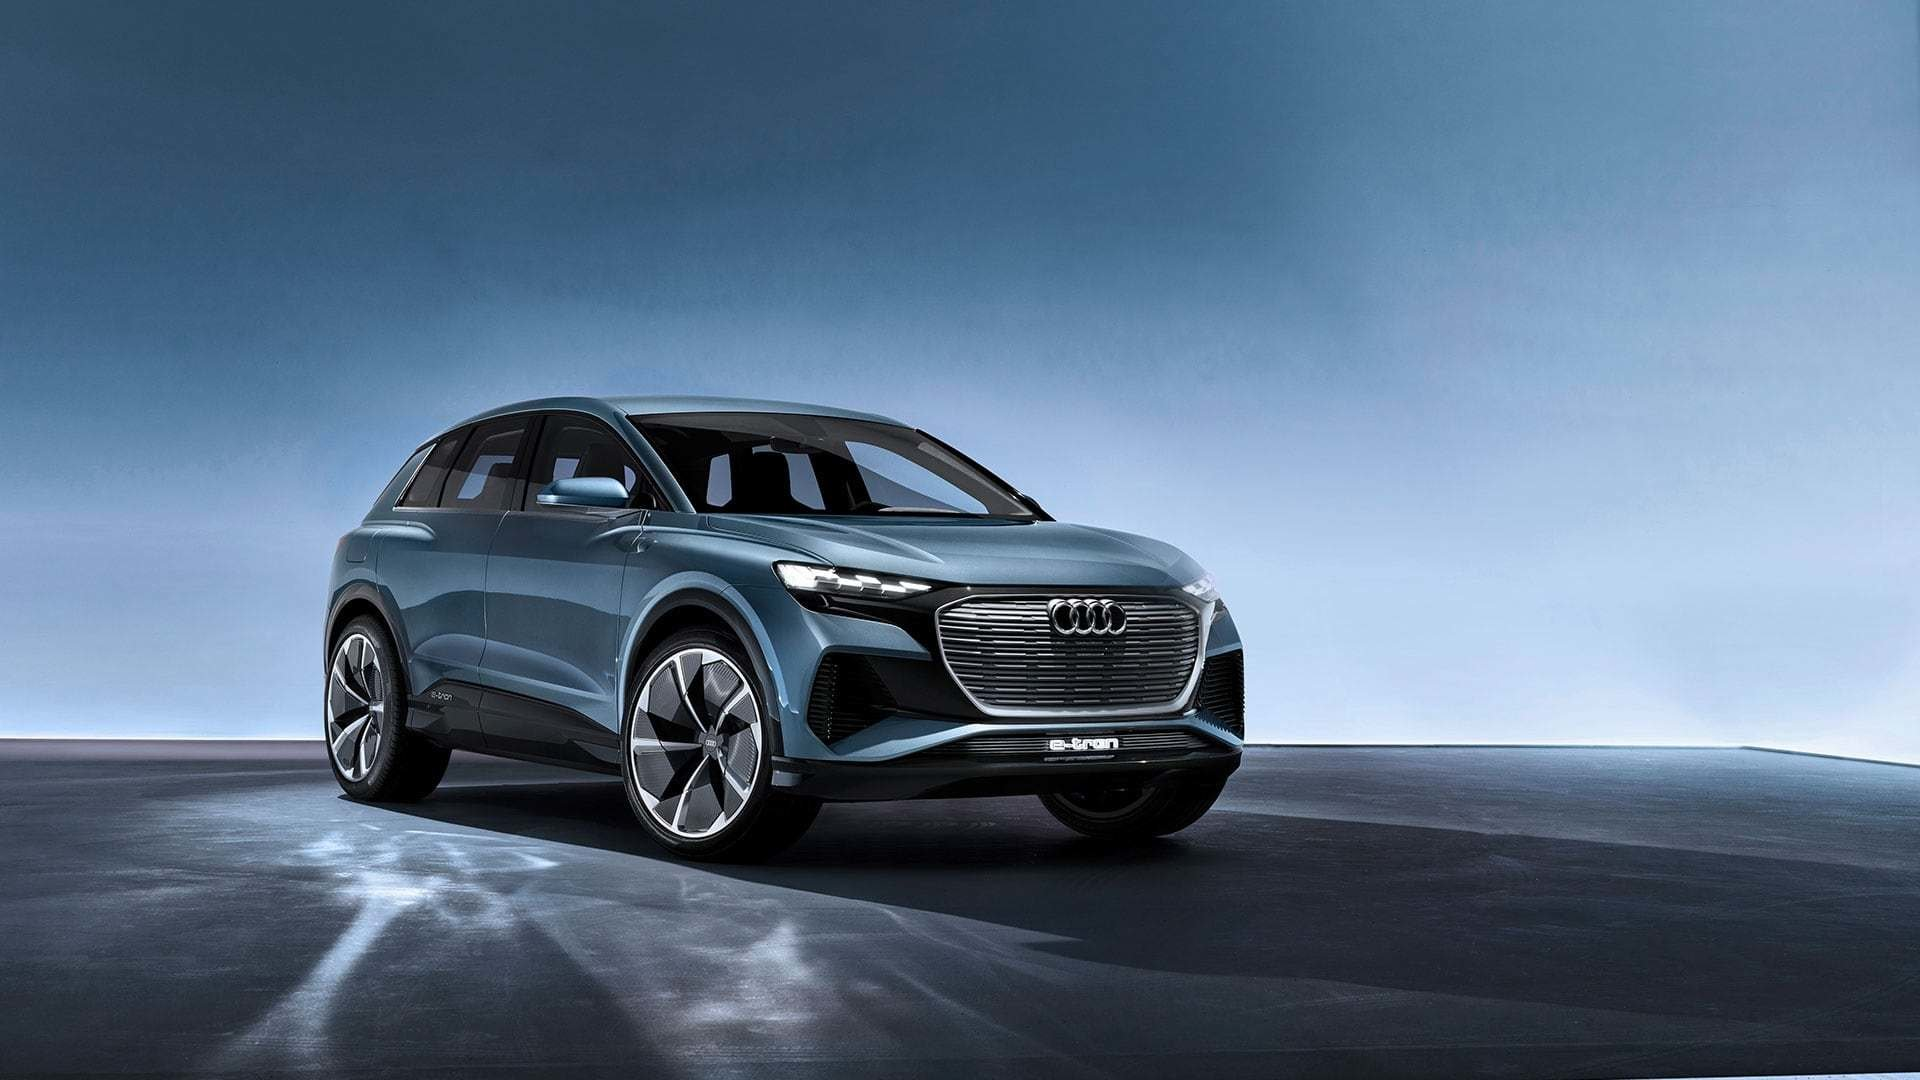 New Concept Cars Audi Com On This Month